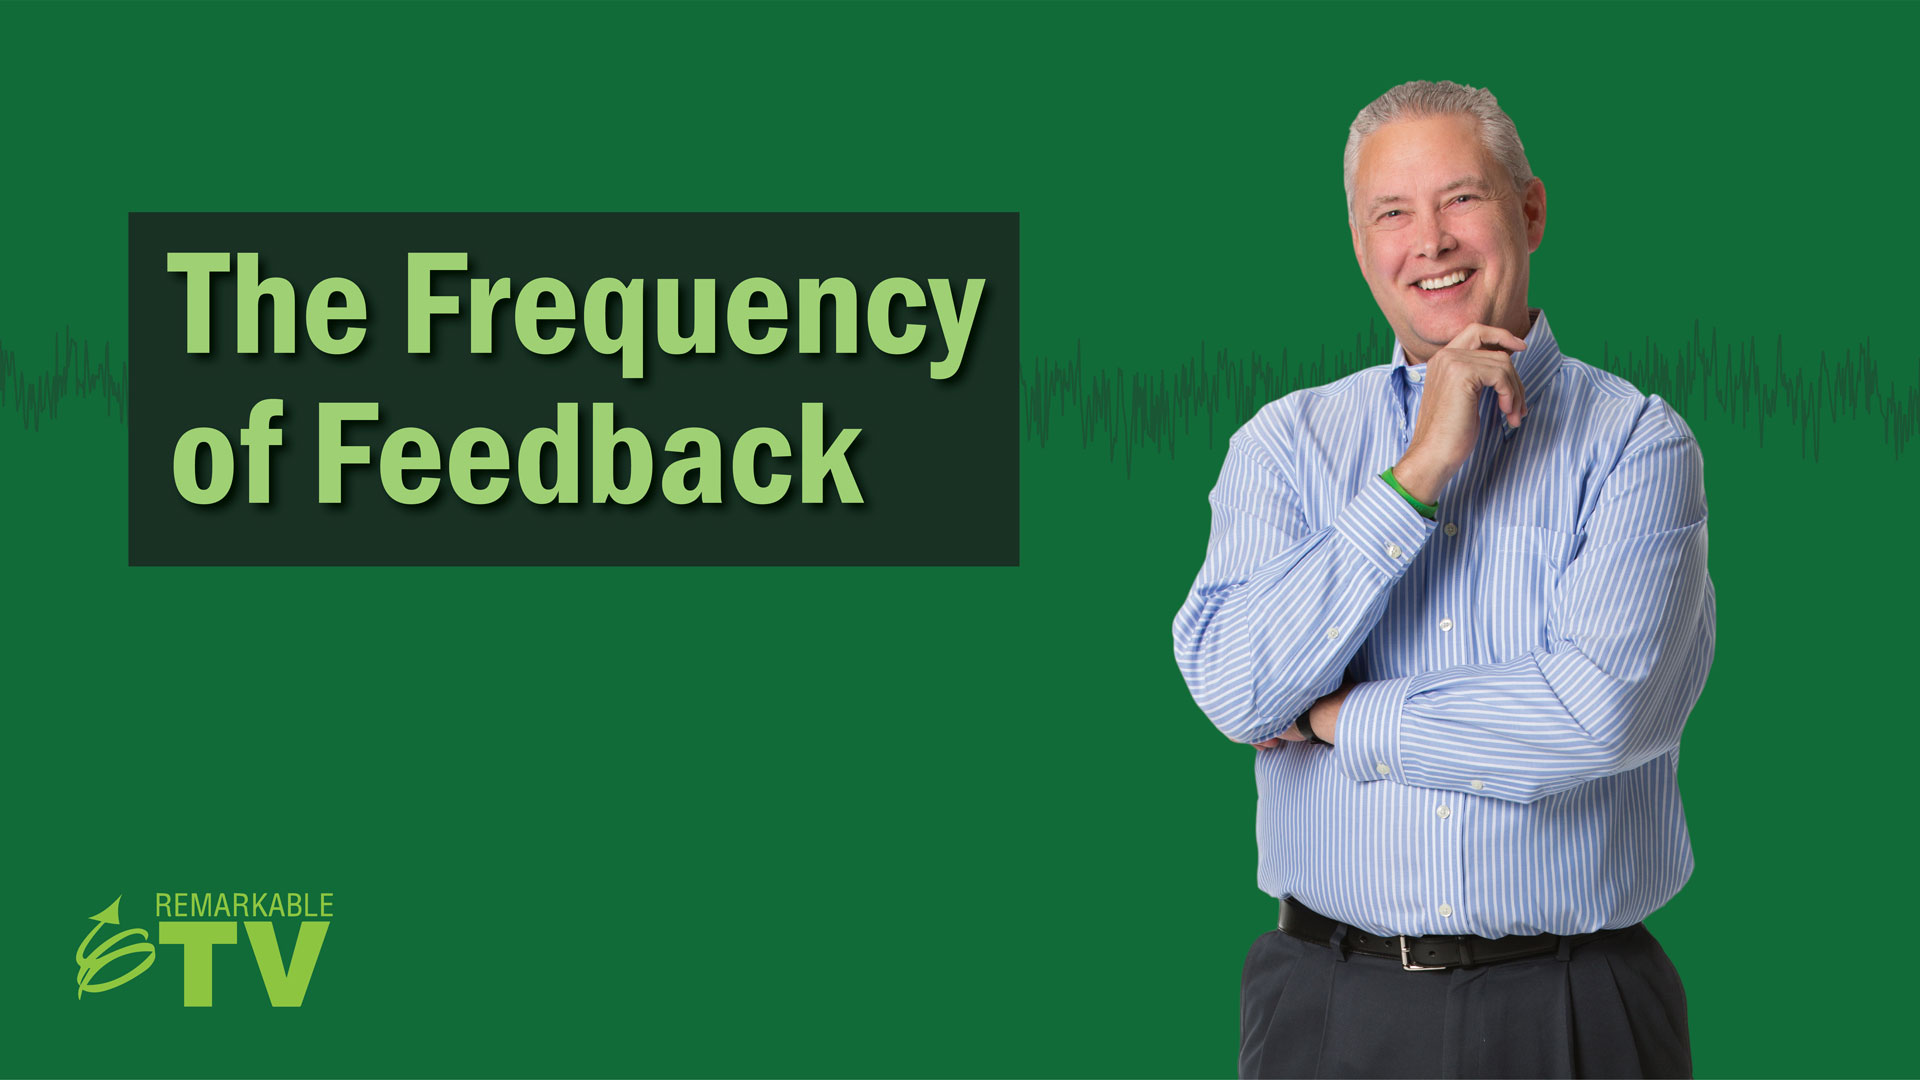 The Frequency of Feedback Remarkable TV episode with Kevin Eikenberry